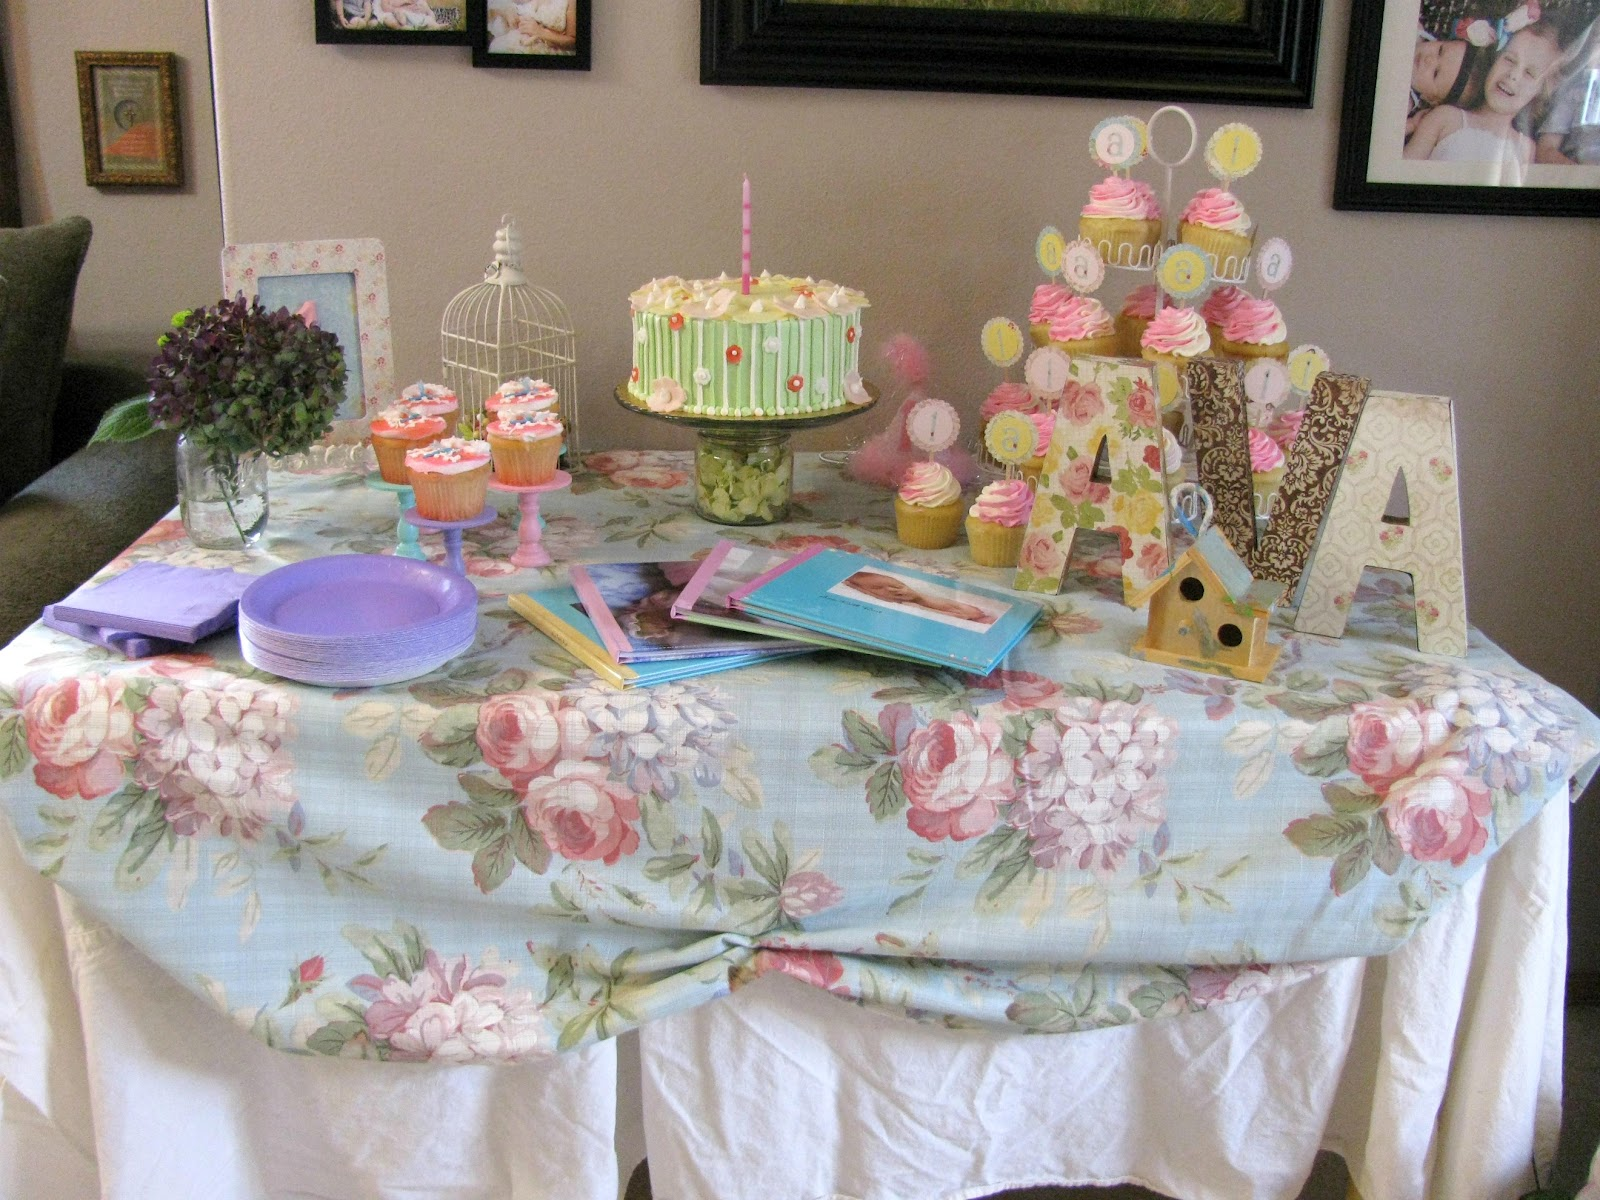 Birthday cake table decorations with balloons the house for Table decoration ideas